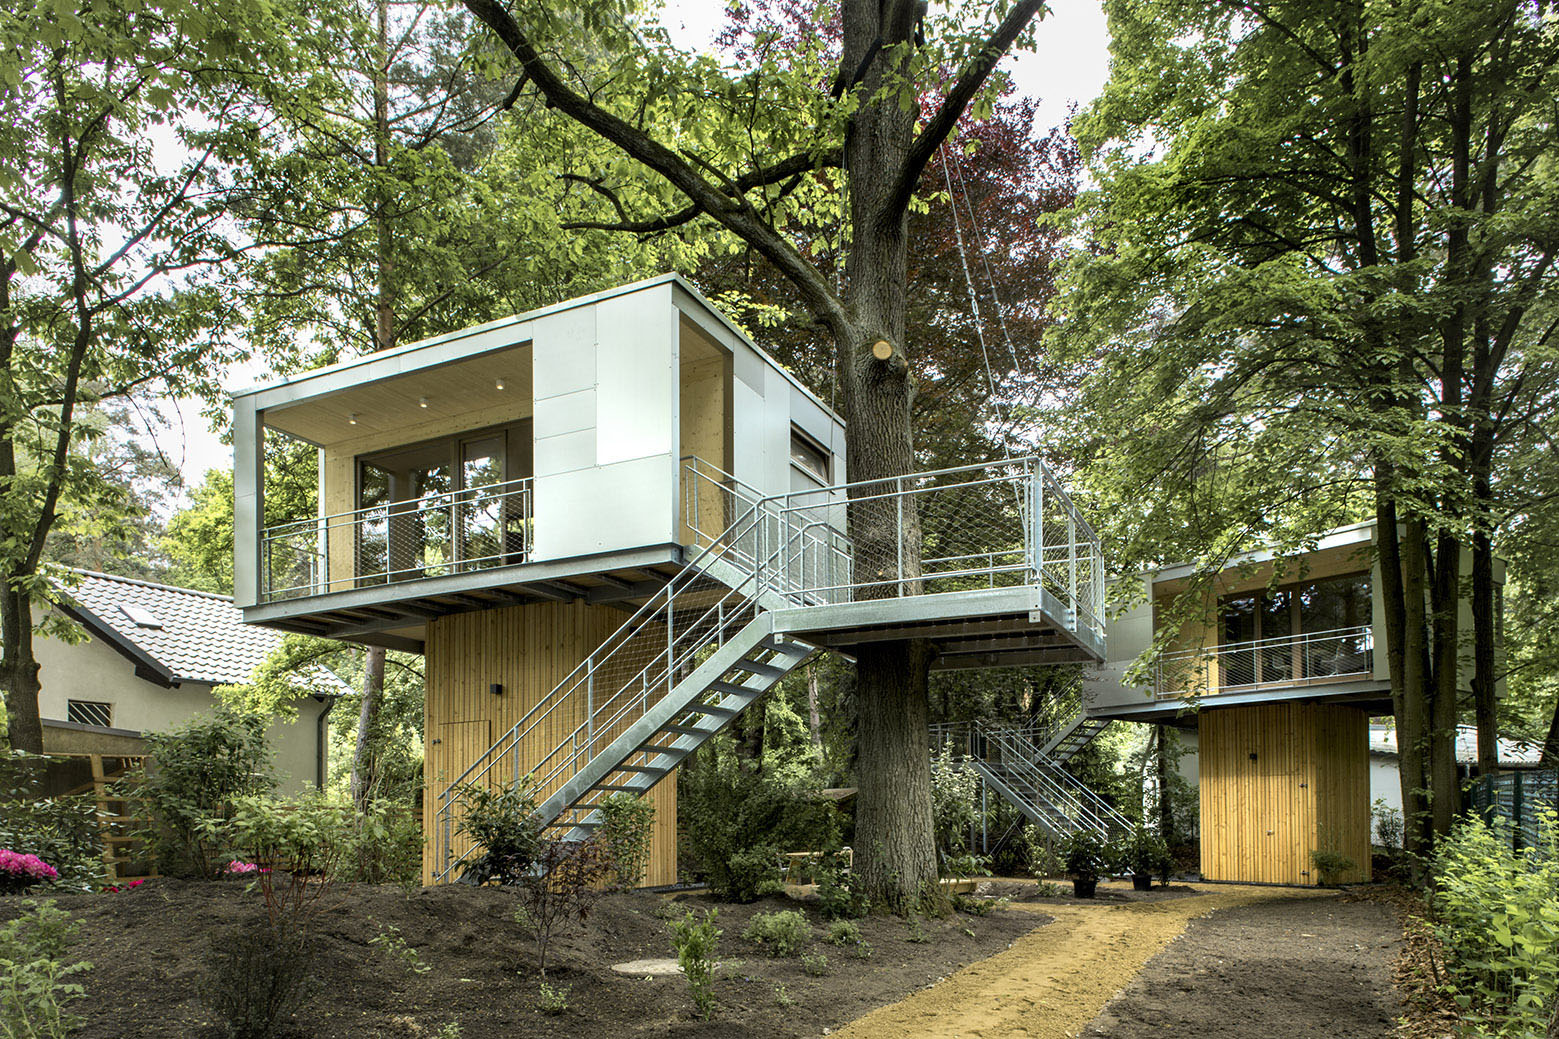 restaurant supply chairs tall director tiny treehouse urban oasis in berlin | idesignarch interior design, architecture & ...